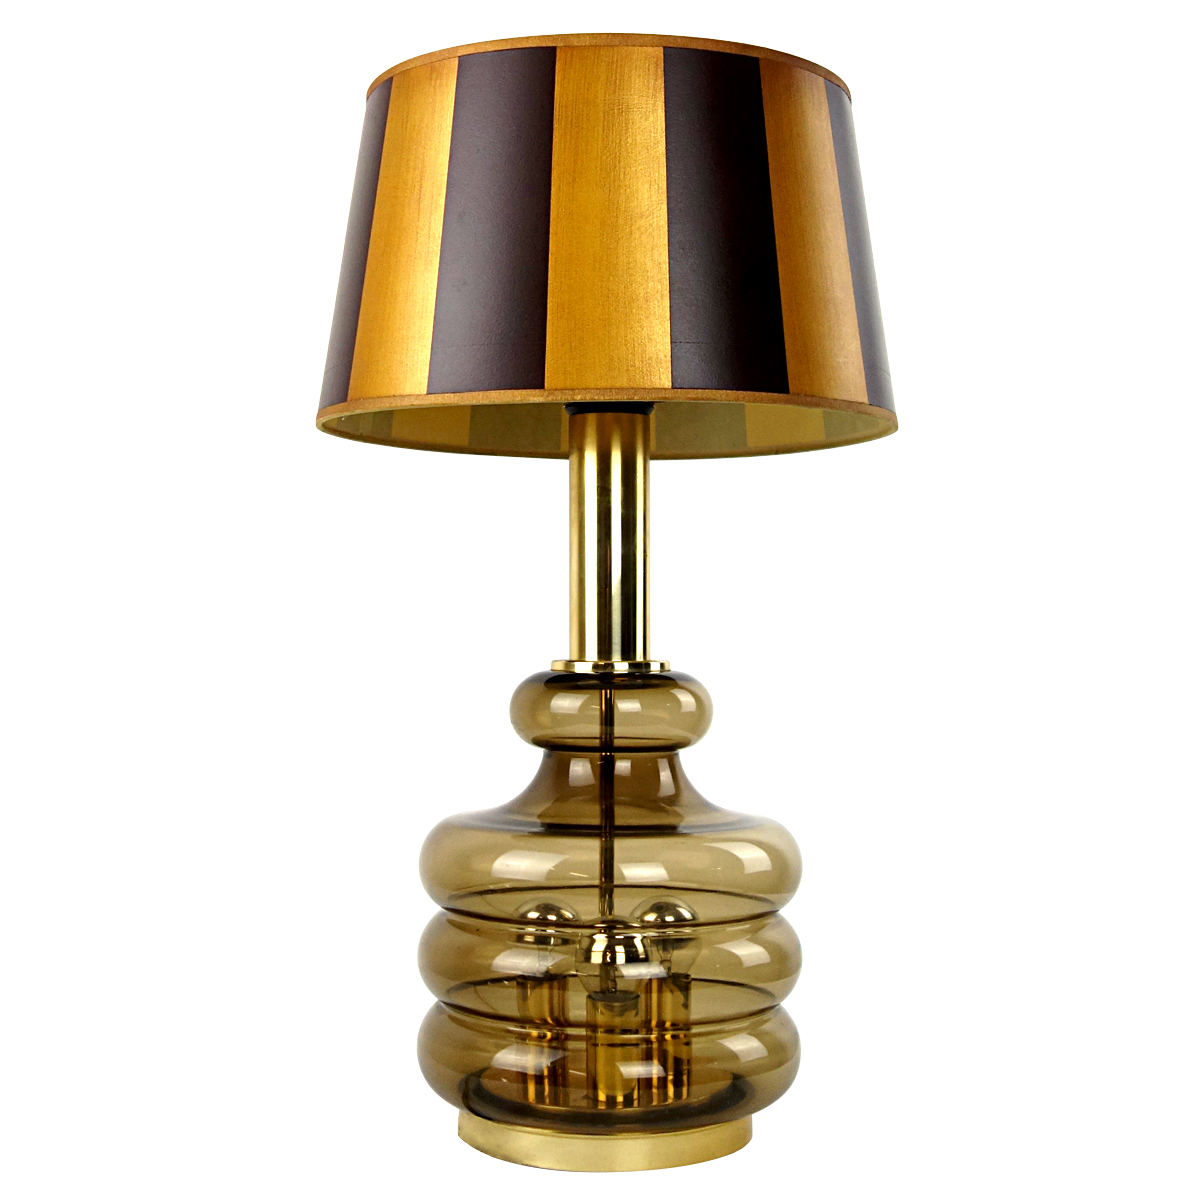 Mid Century Modern Table Lamp Made Of Smoked Glass By Doria Leuchten Doctor Decorum